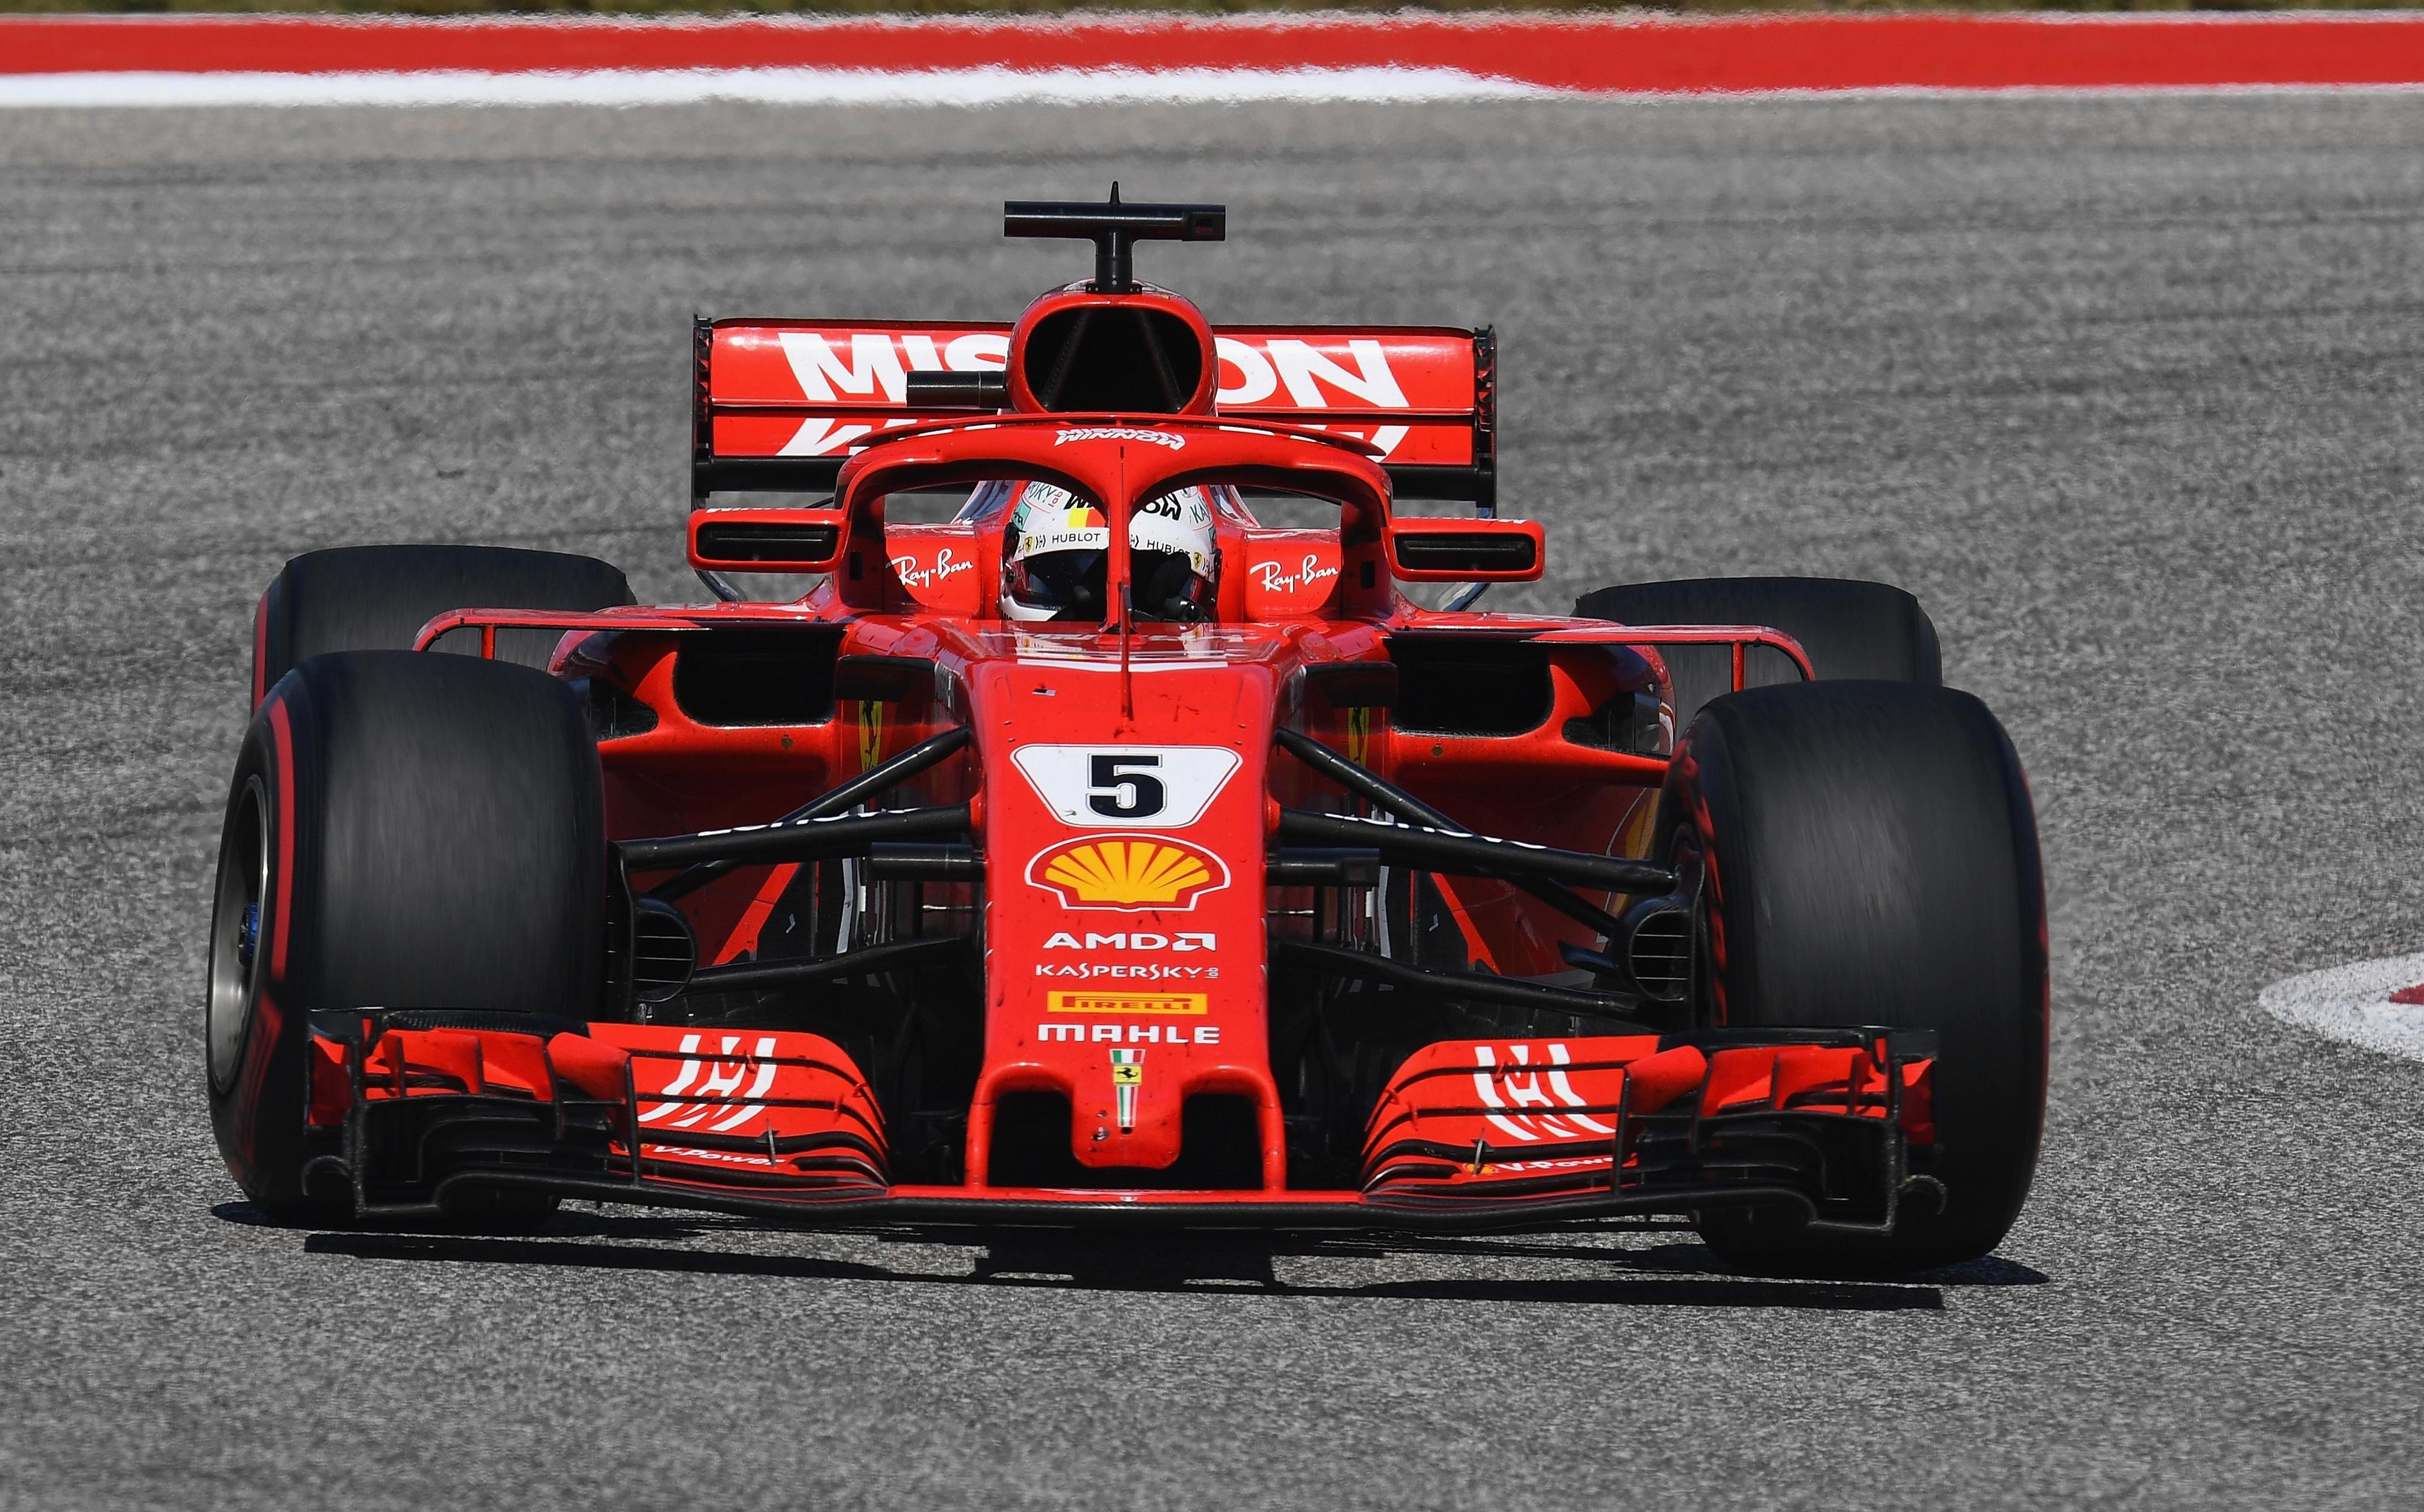 Sebastian Vettel has had to sit back and watch his great rival Lewis Hamilton coast home to an expected world title win